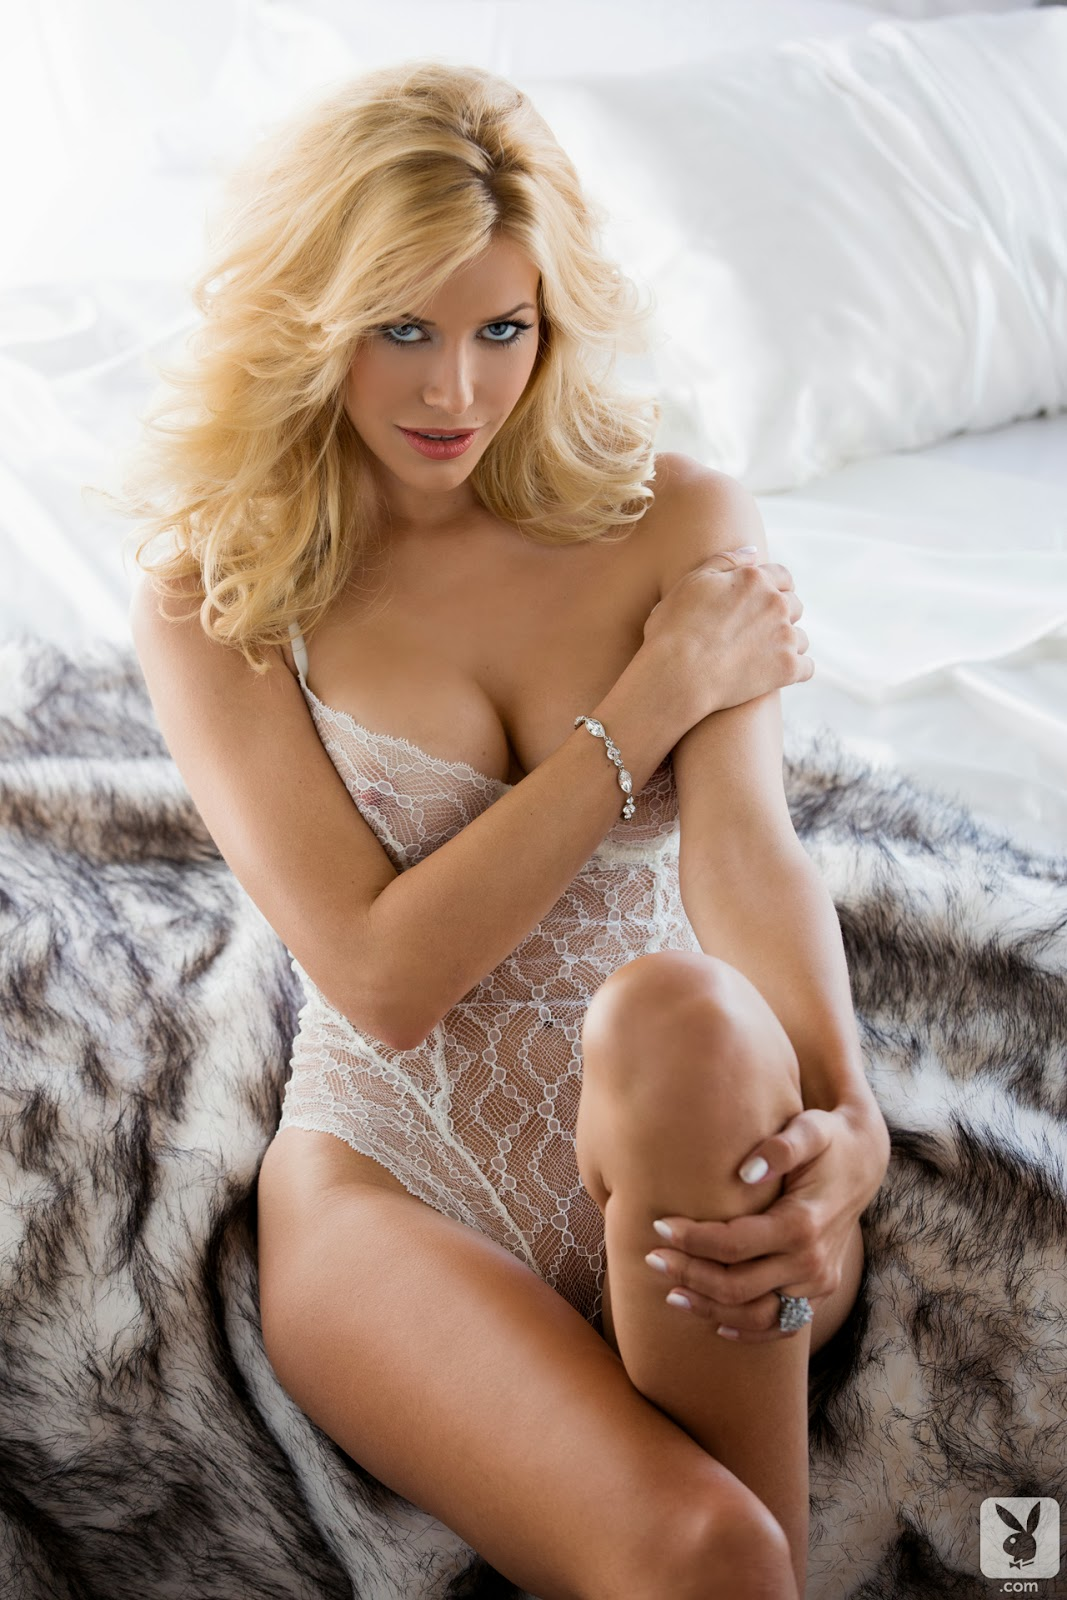 Sexy Pics: Kennedy Summers - Playmate of the Month for